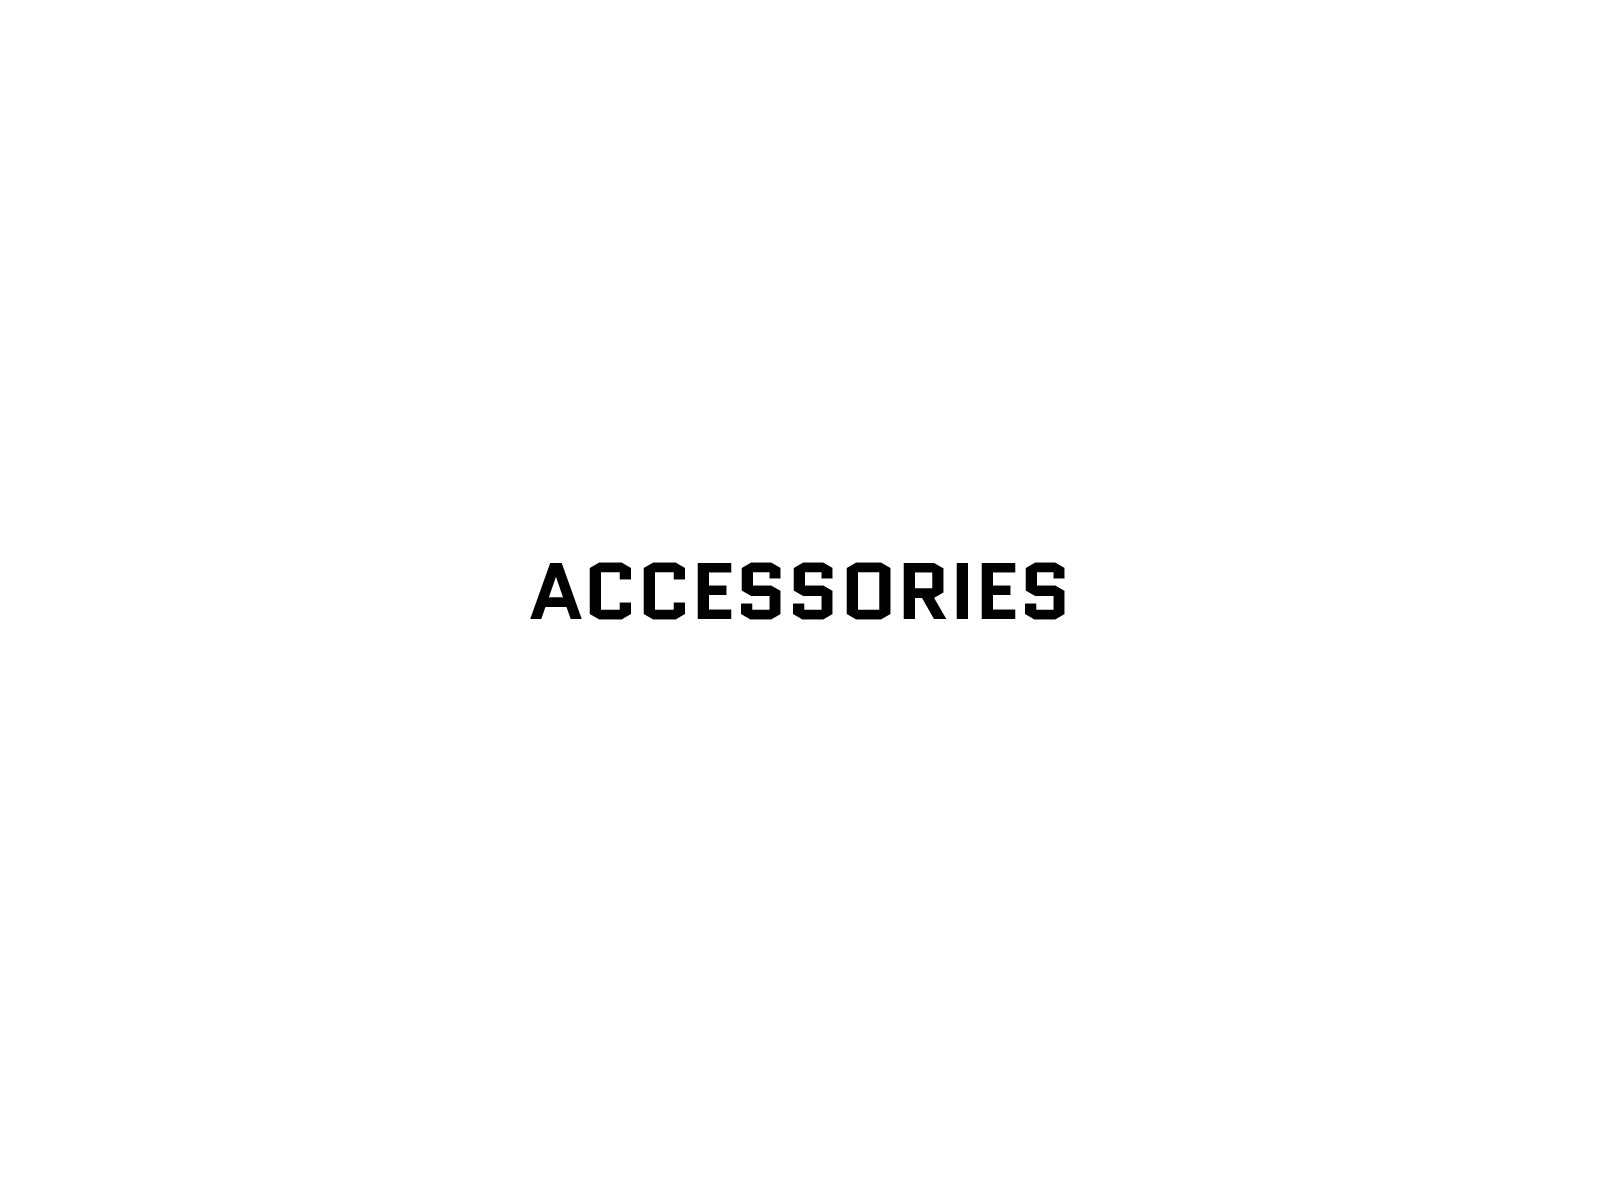 image of Accessories